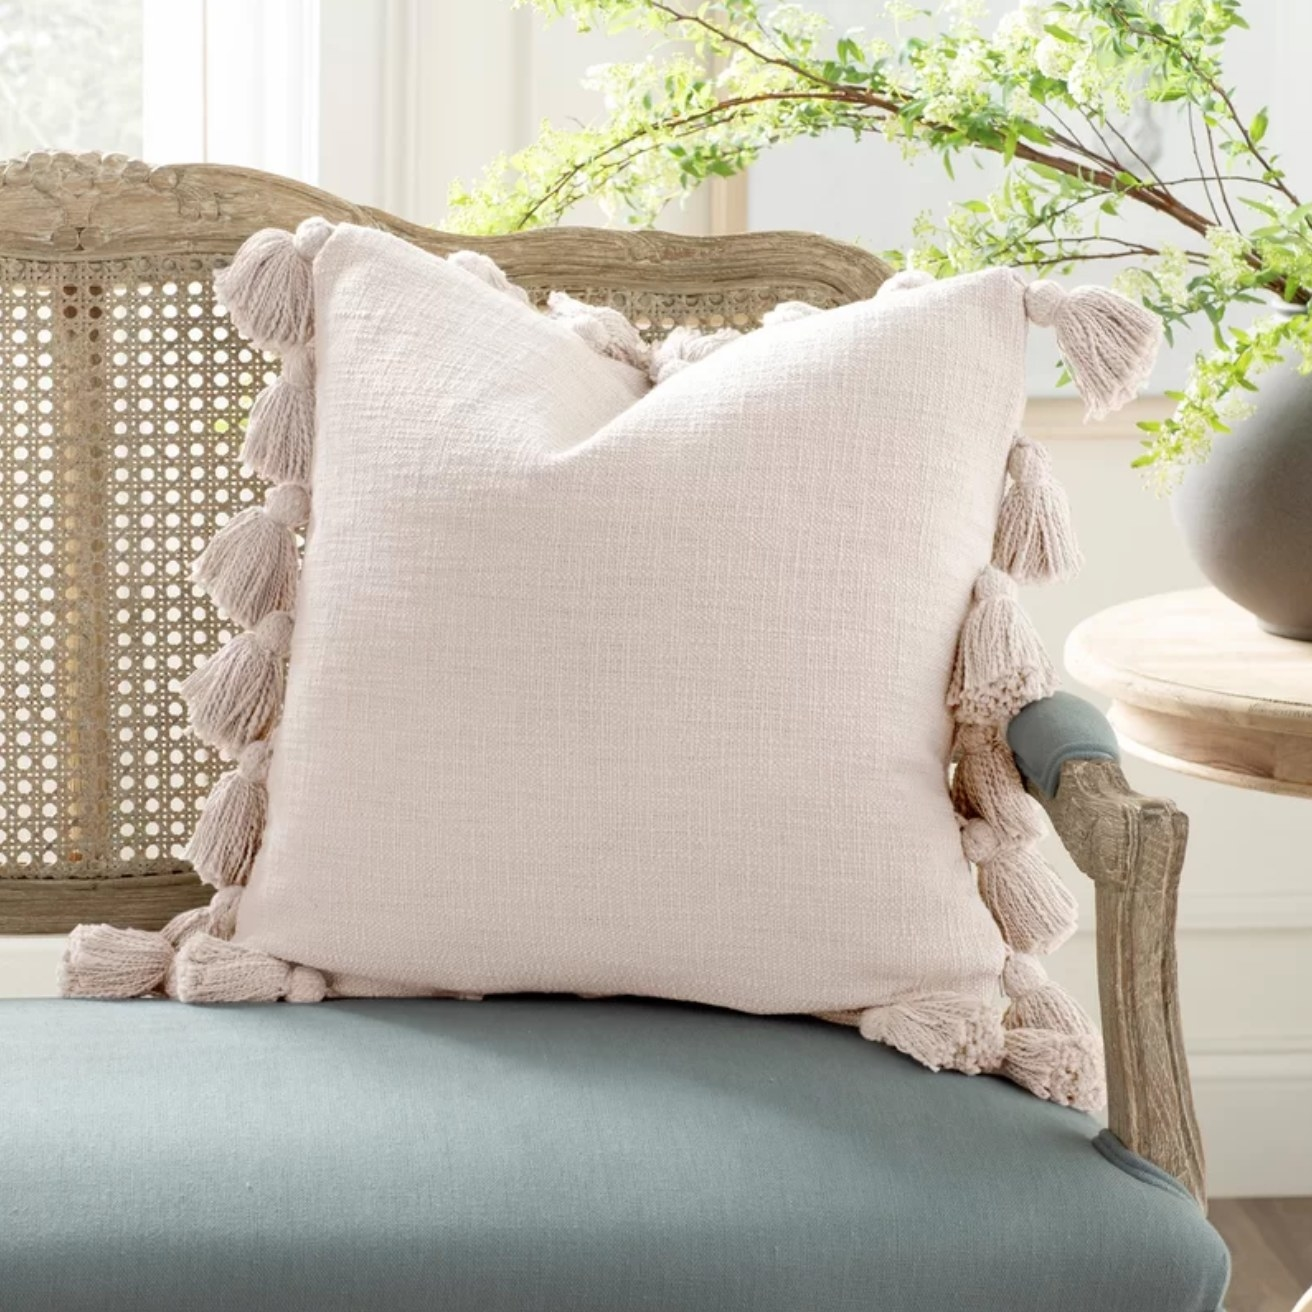 The pink decorative throw pillow on a cane bench